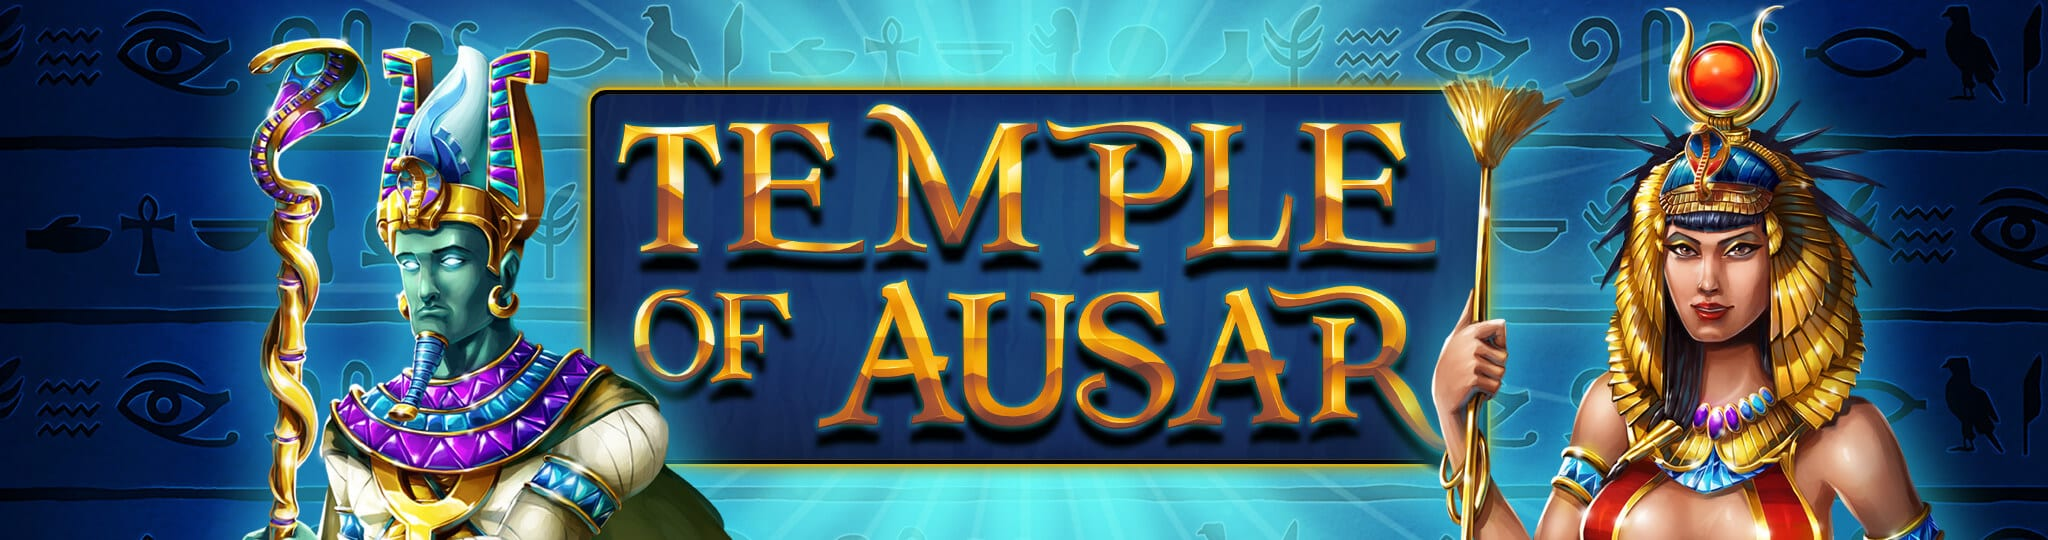 Temple Of Ausar online slots game logo